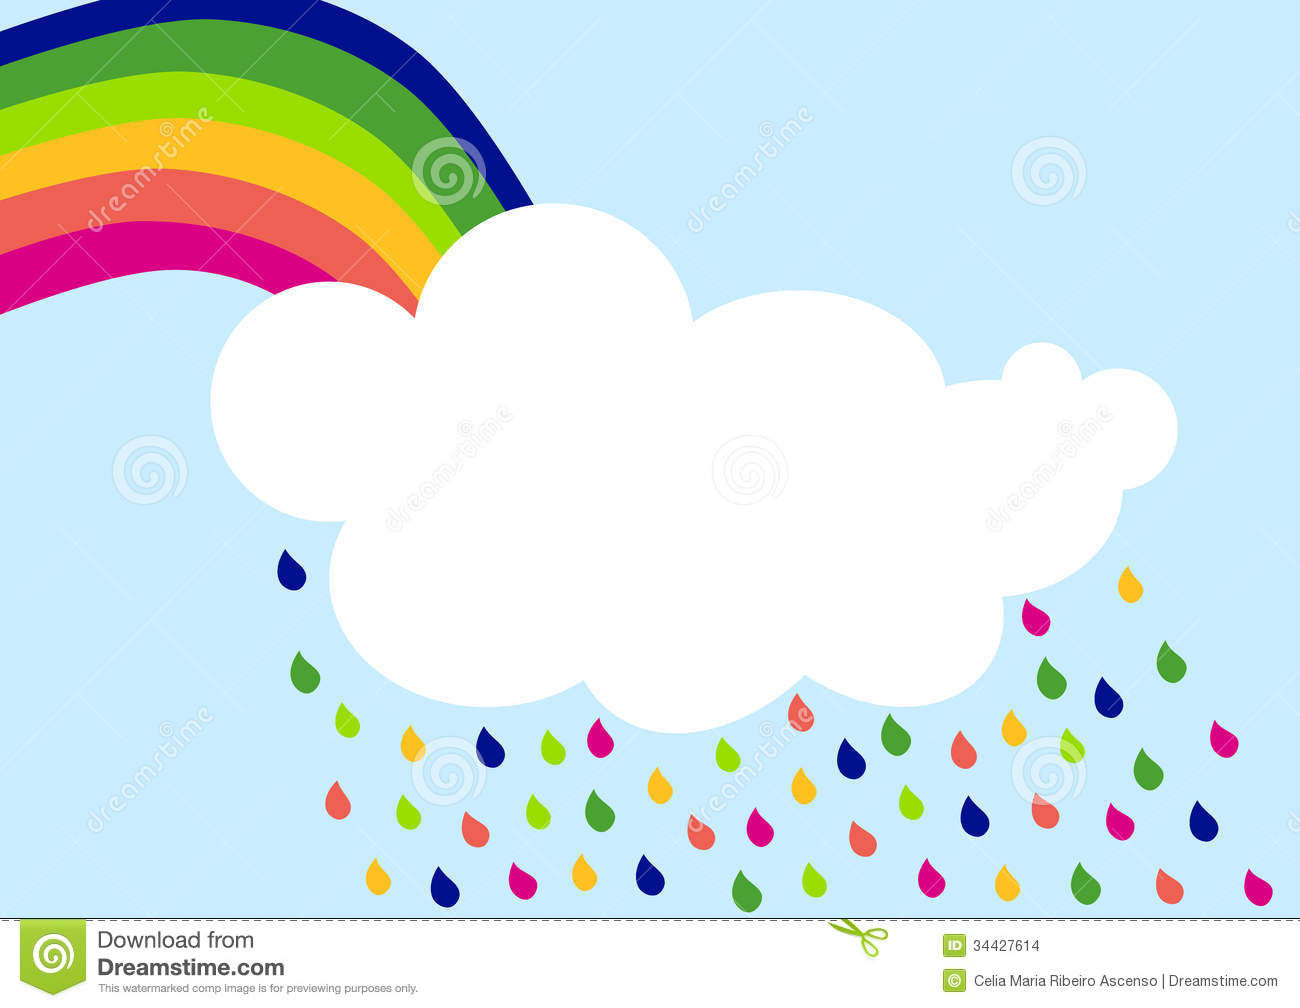 Rainbow Rain Cloud Invitation Card Stock Illustration - Illustration of greeting, cold: 34427614